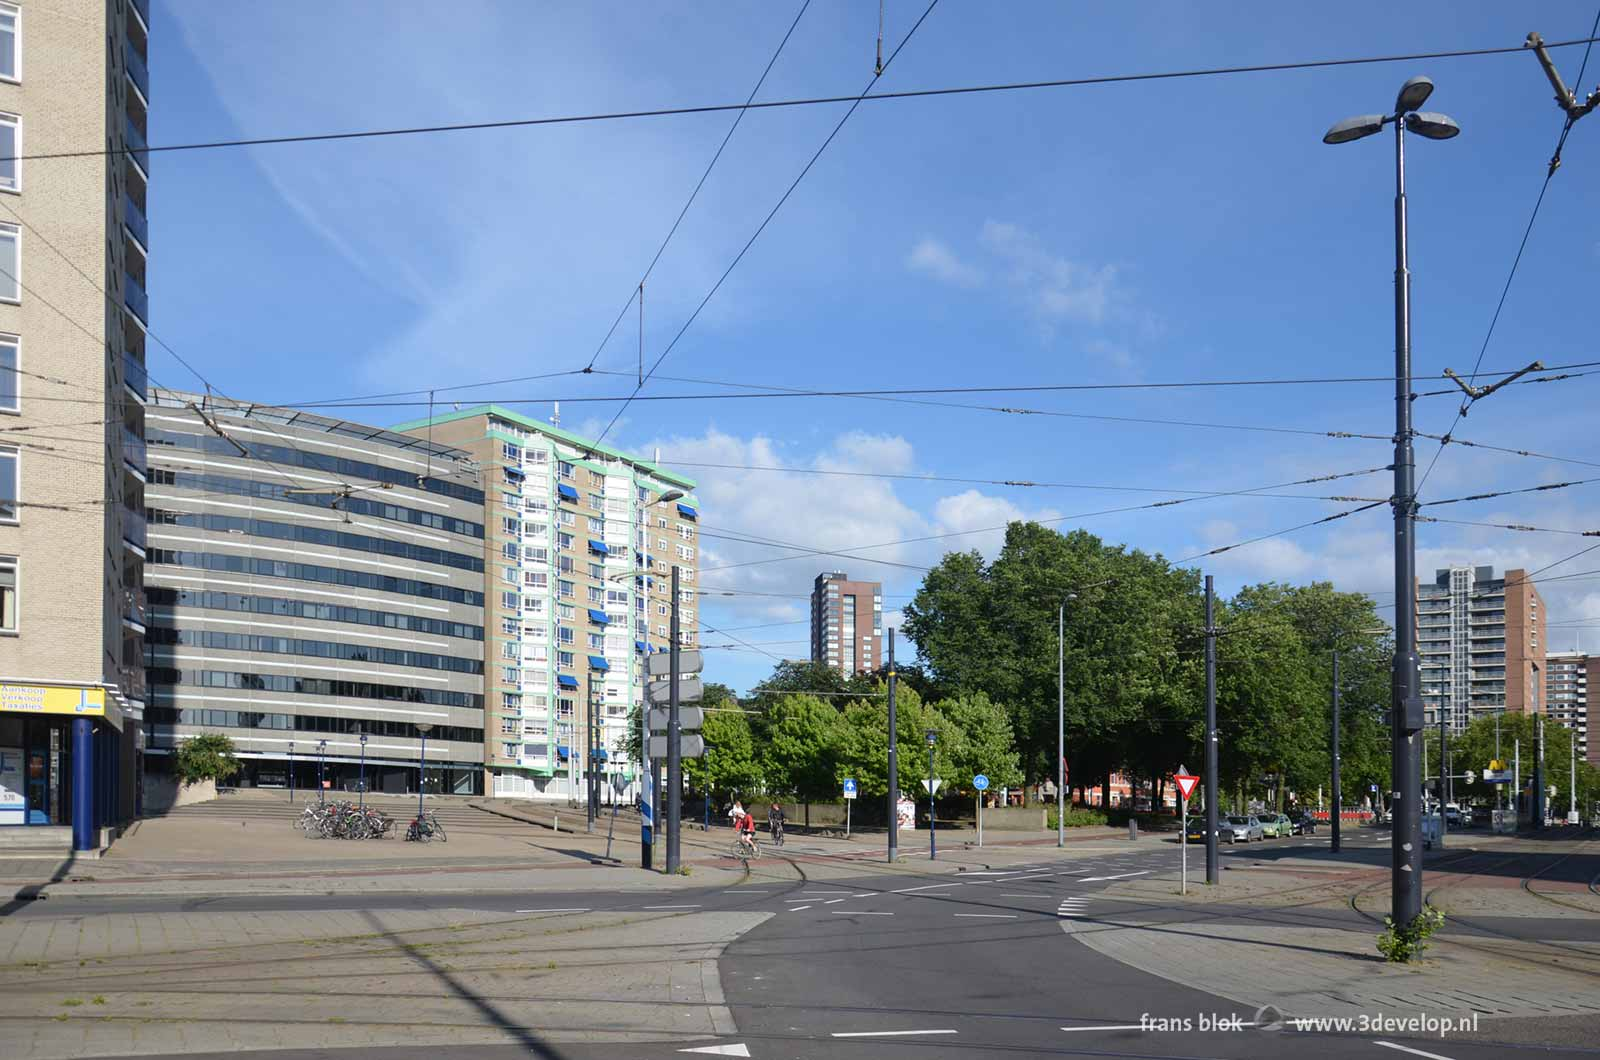 The current situation at Oostplein in Rotterdam: asphalt, tram tracks, pavement and ugly architecture